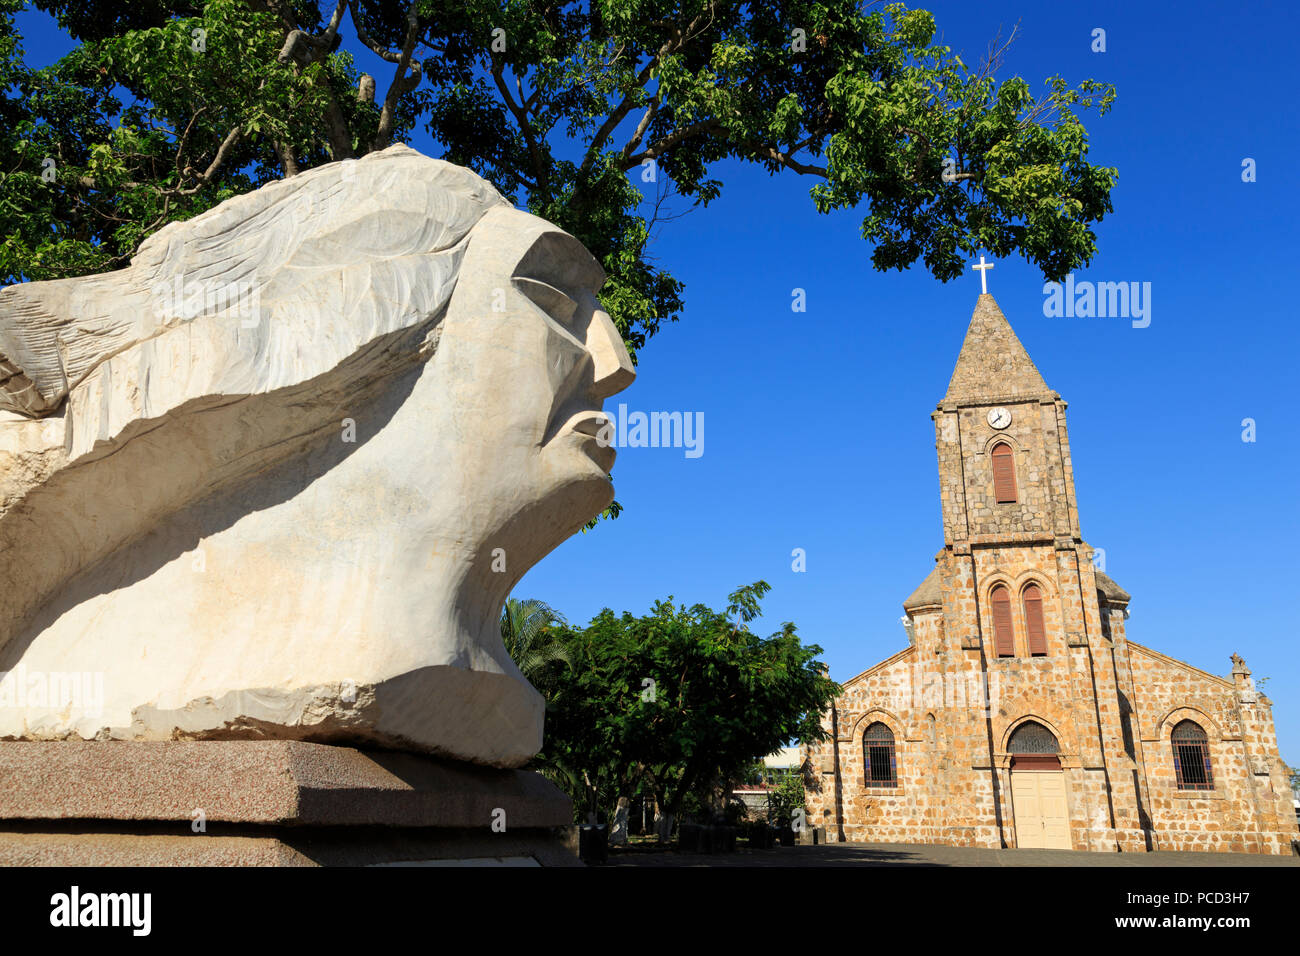 Sculpture by Francisco Martinez and Cathedral, Puntarenas City, Costa Rica, Central America - Stock Image